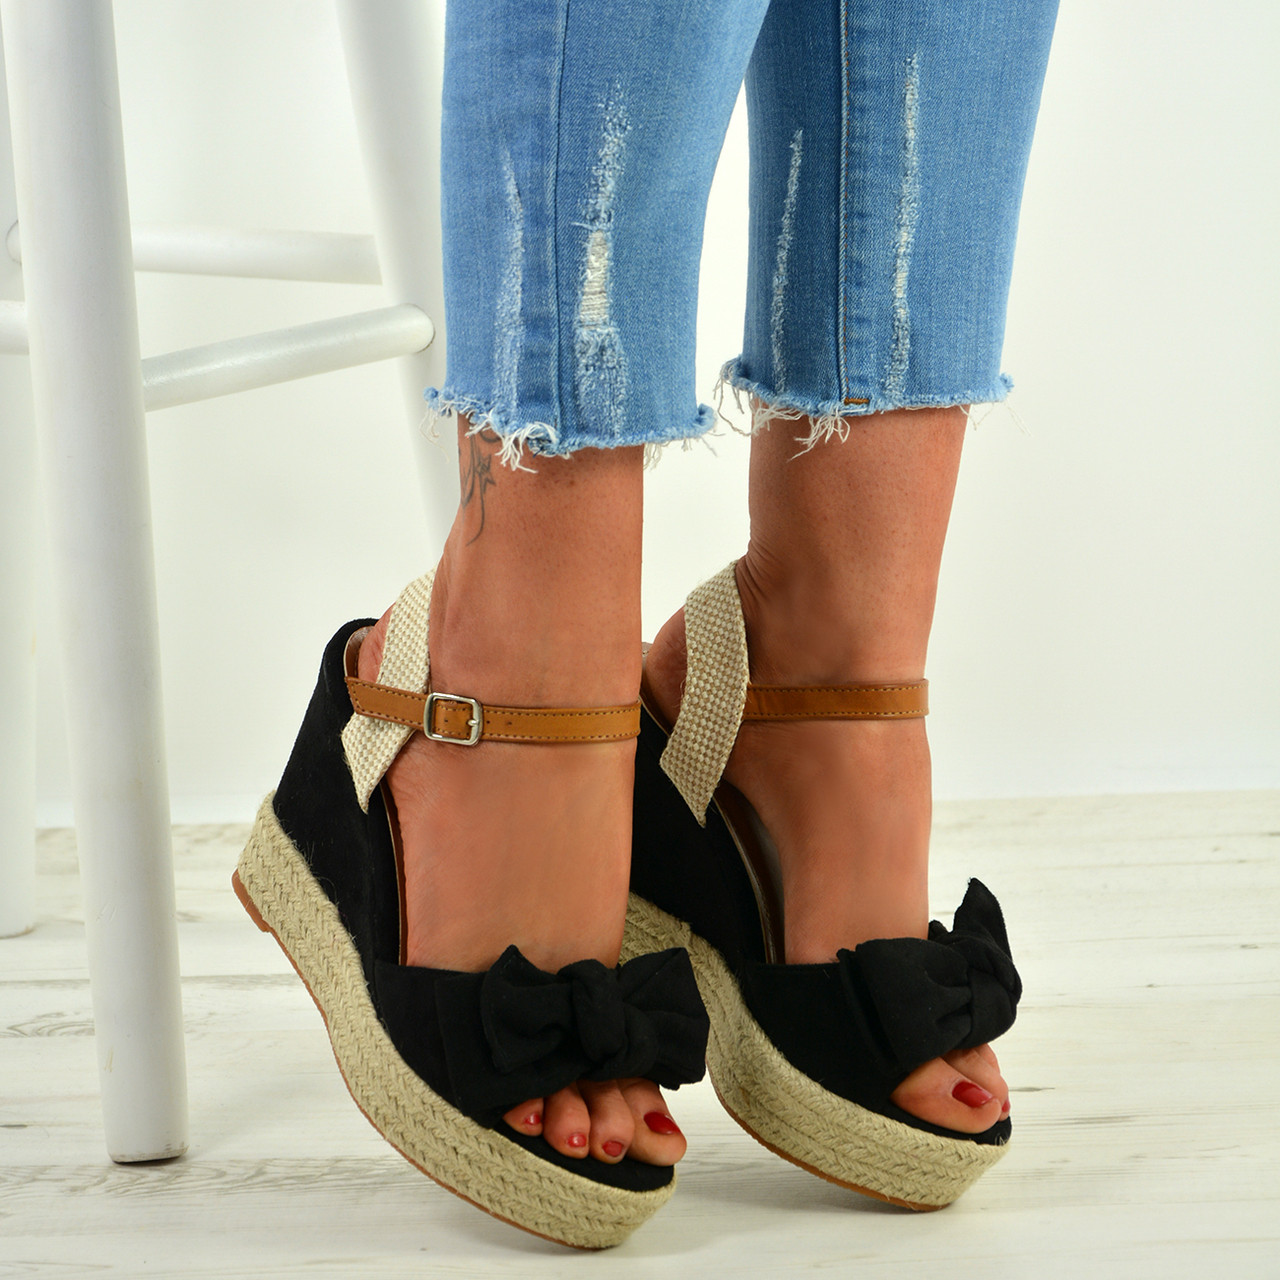 4603b84a4b8 New Womens High Heel Wedges Ladies Bow Ankle Strap Platform Sandals Shoes